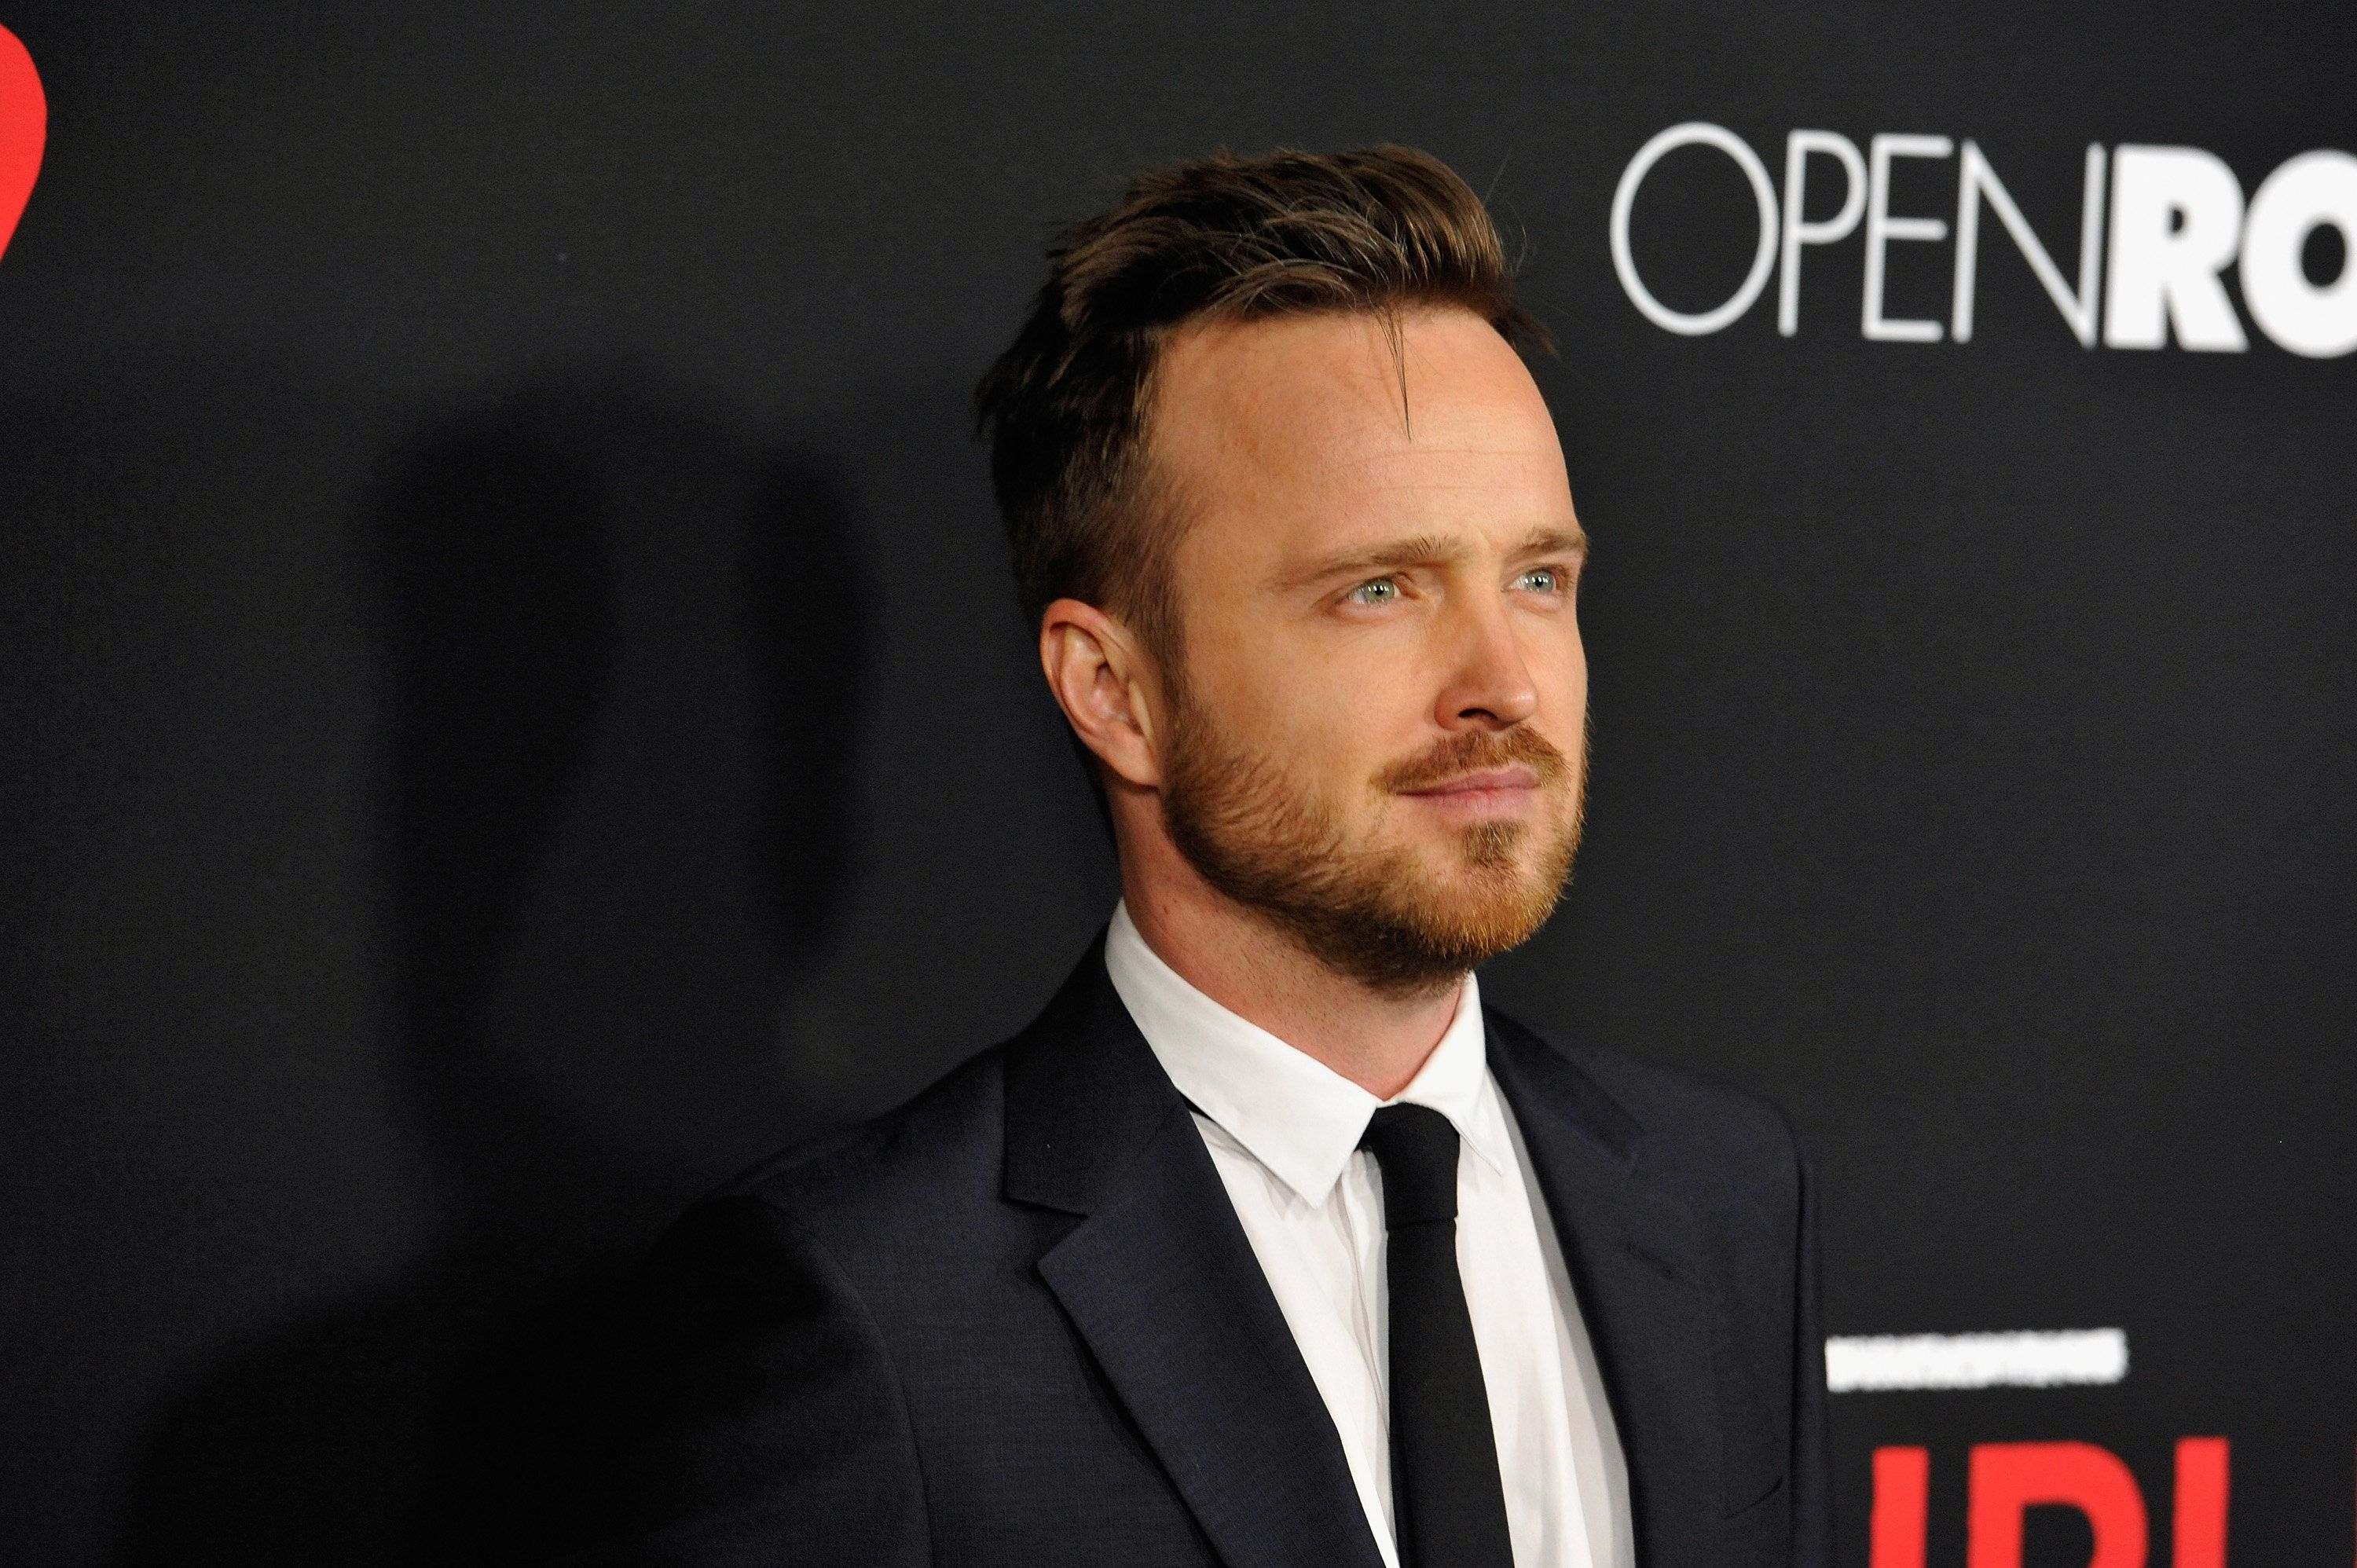 LOS ANGELES, CA - FEBRUARY 16:  Actor Aaron Paul attends the premiere of Open Road's new film 'Triple 9' at Regal Cinemas L.A. Live on February 16, 2016 in Los Angeles, California.  (Photo by Michael Tullberg/Getty Images)